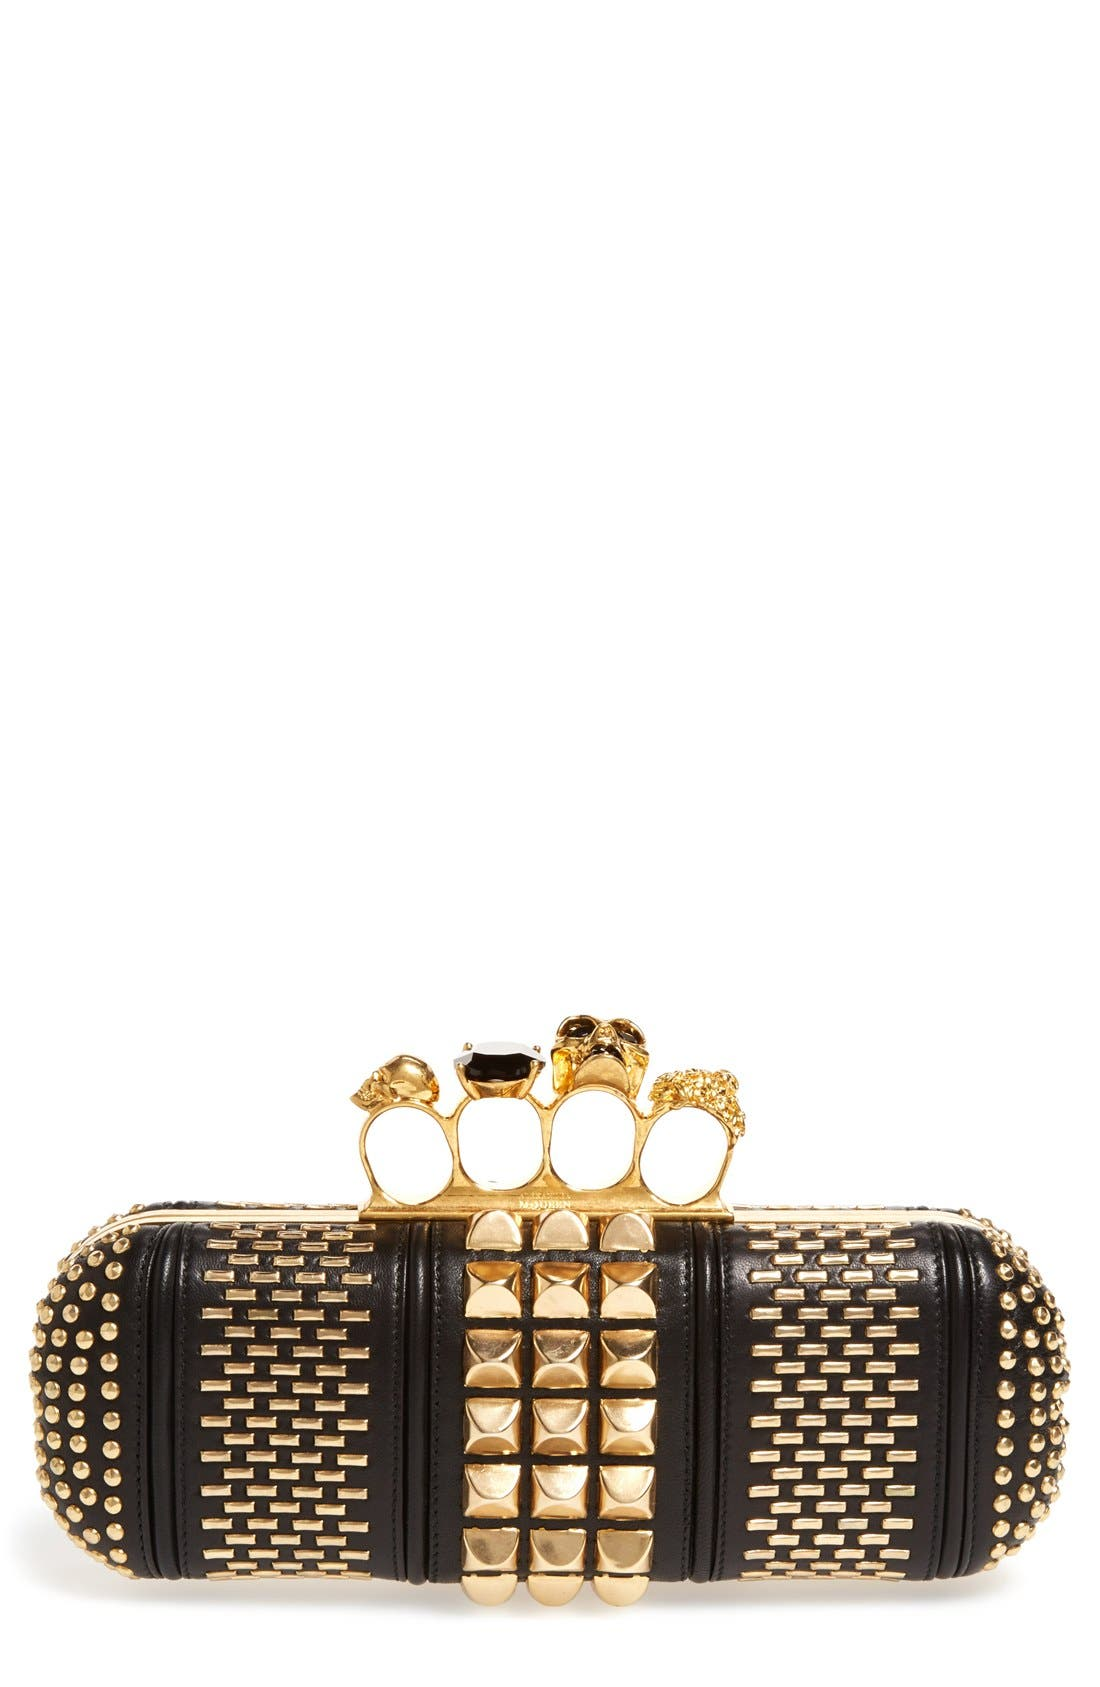 Alternate Image 1 Selected - Alexander McQueen Knuckle Clasp Graphic Studded Box Clutch